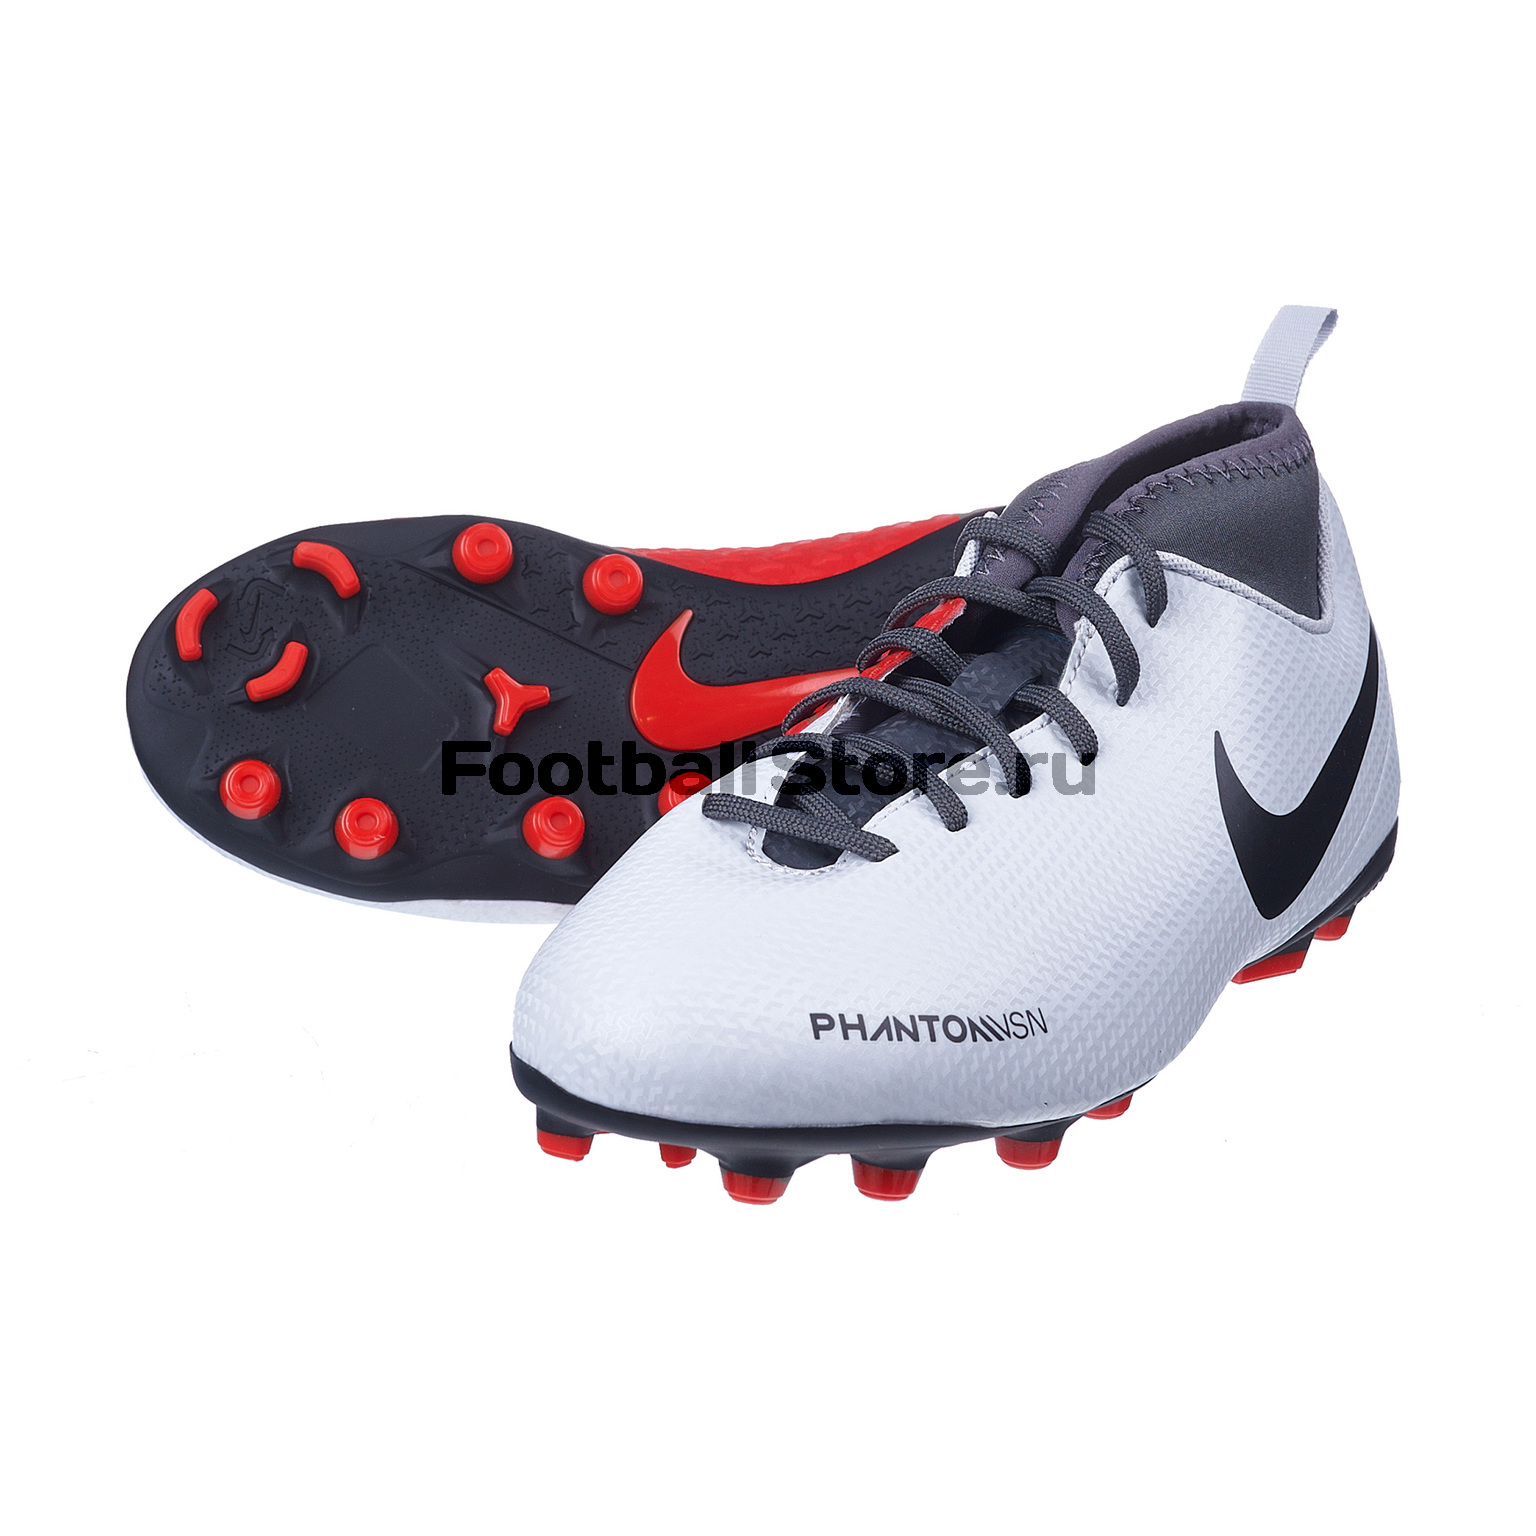 Бутсы детские Nike Phantom Vision Club FG/MG AO3288-060 бутсы детские nike phantom vision academy df fg mg ao3287 600